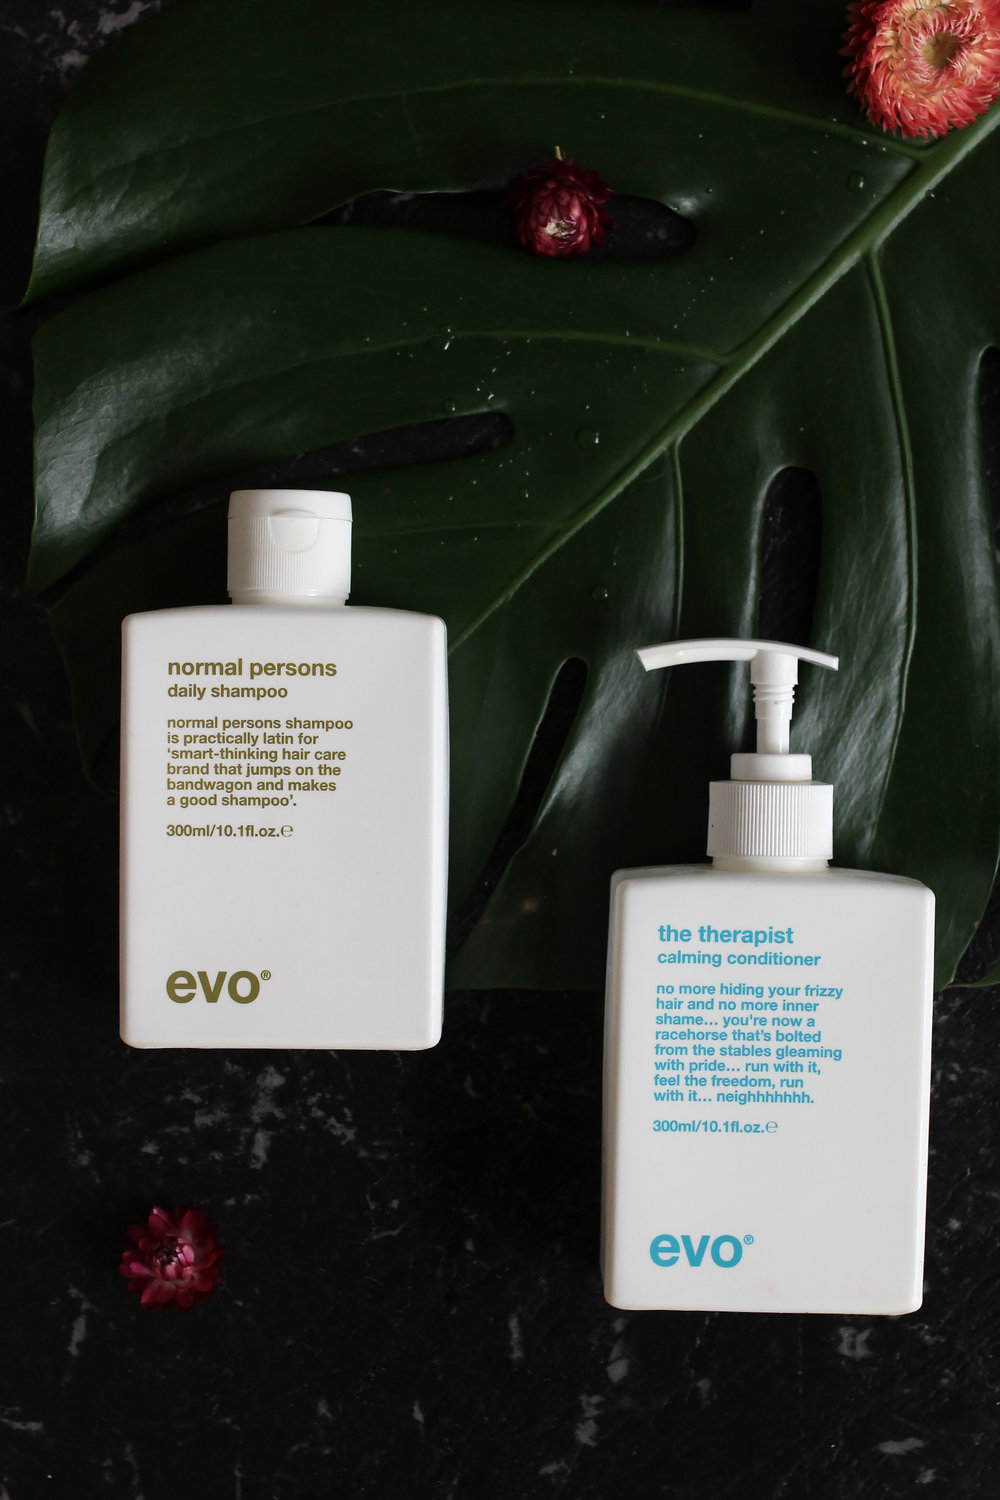 Evo Normal Persons Daily Shampoo & Therapist Calming Conditioner